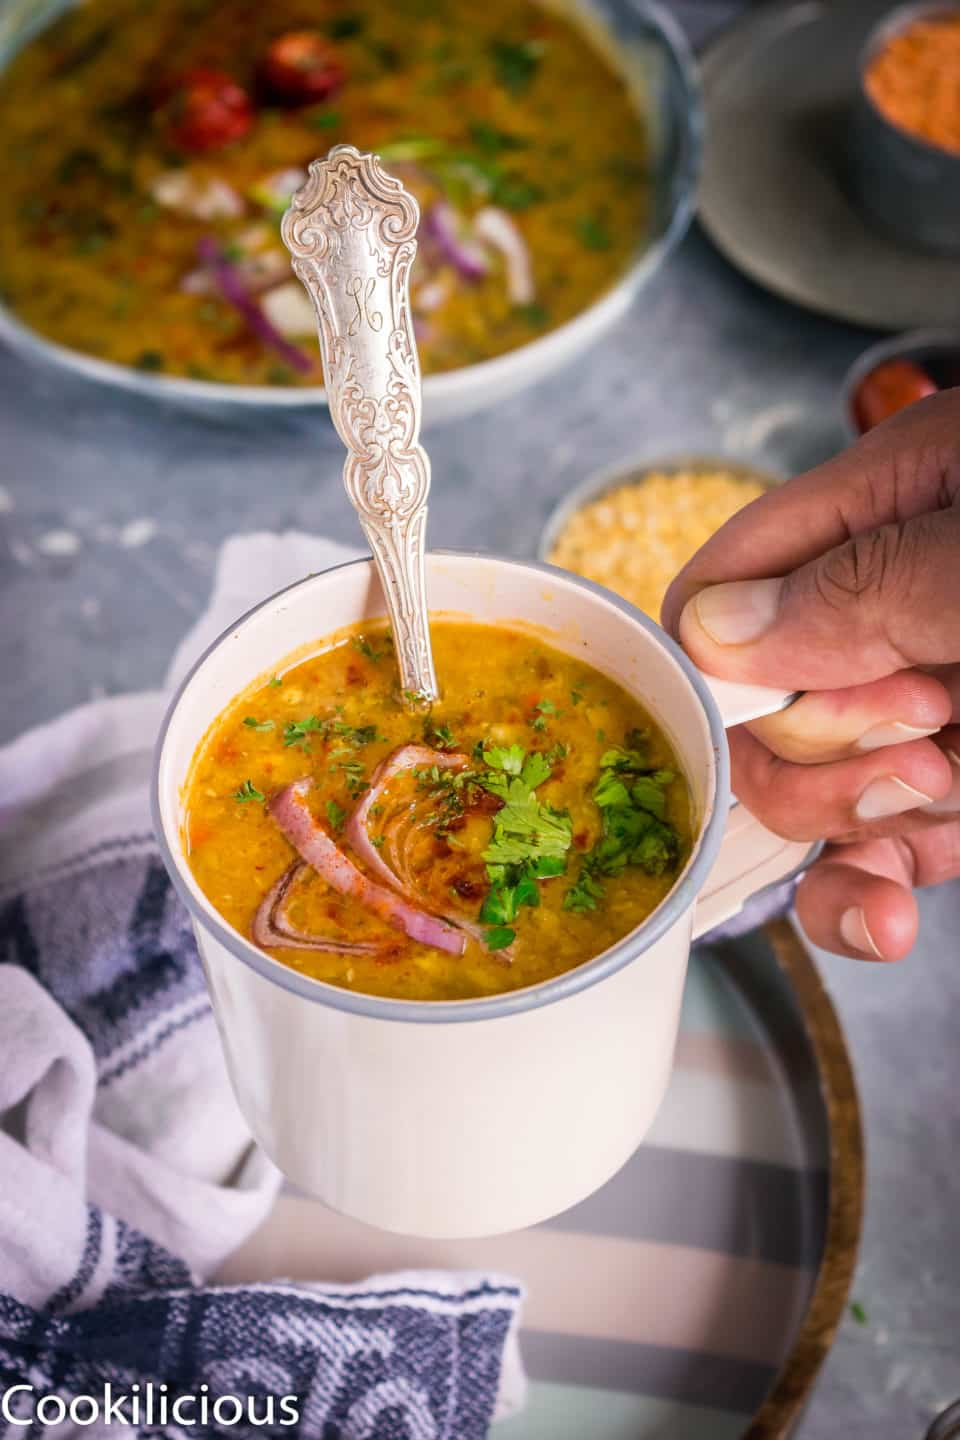 close up shot of a hand lifting a mug filled with Indian Style Green Moong Sprouts Dal Fry